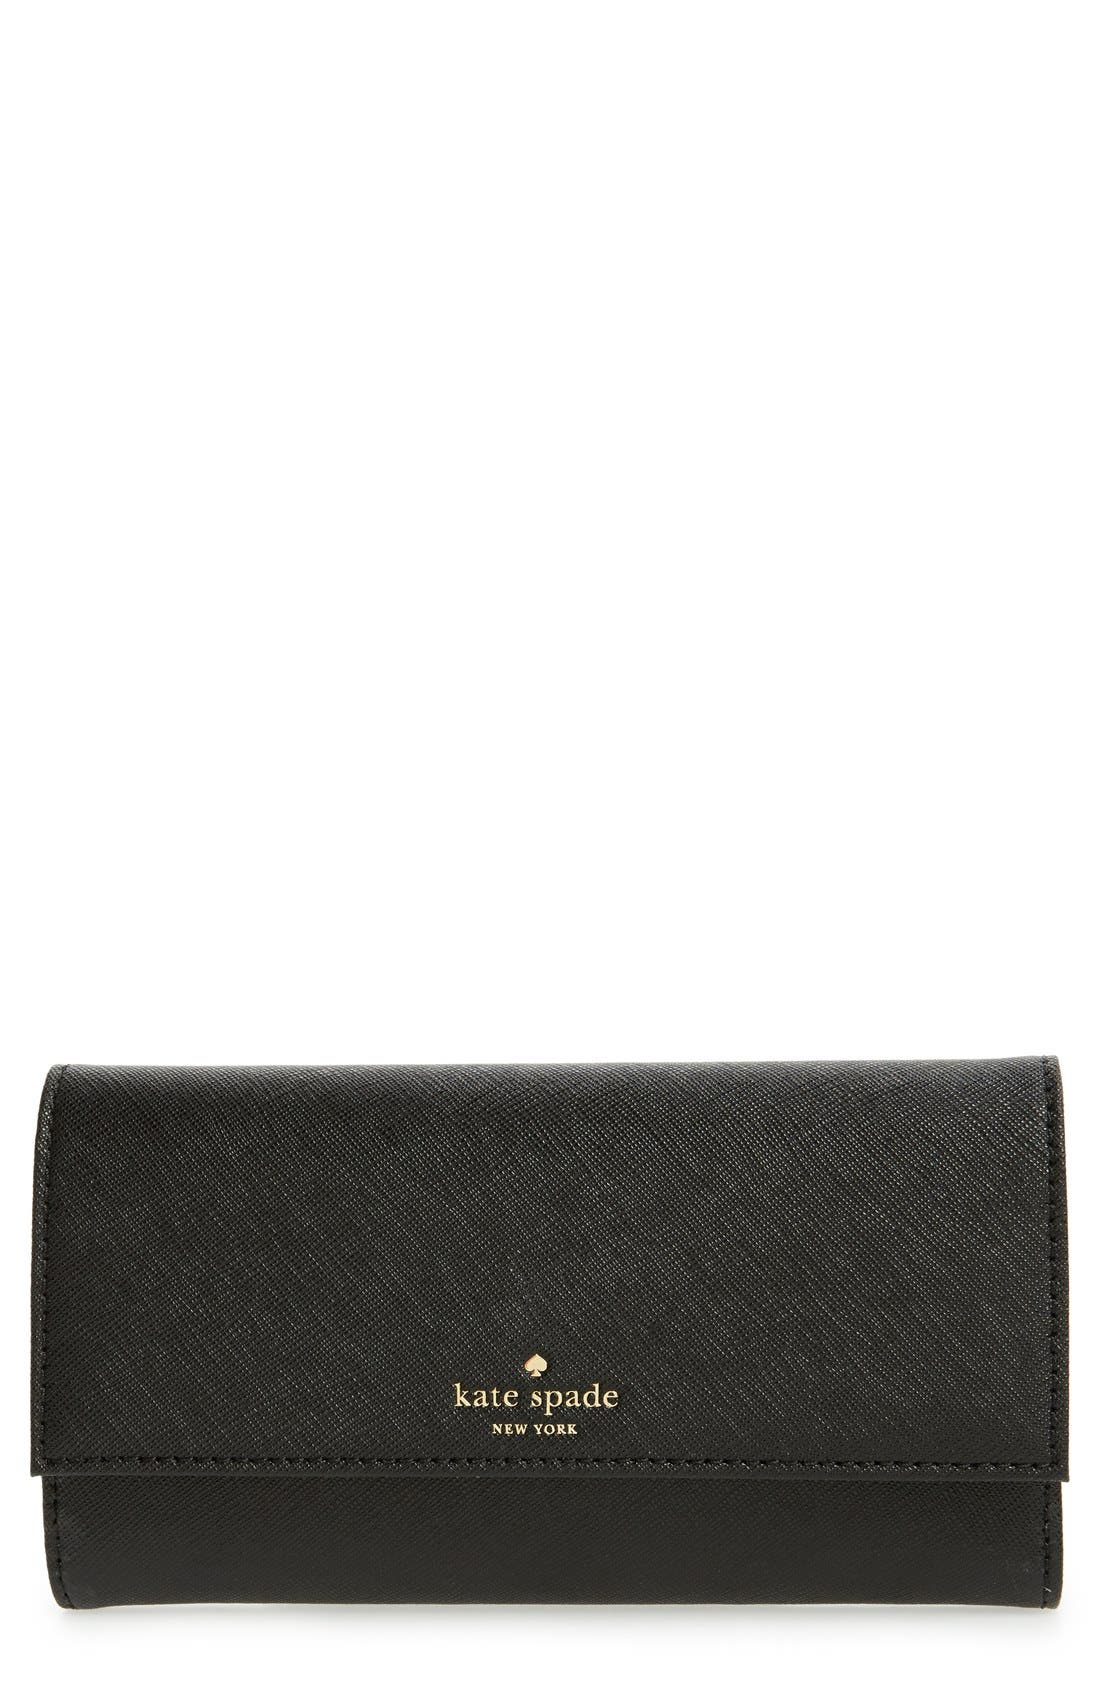 Main Image - kate spade new york iPhone 6/6s wallet